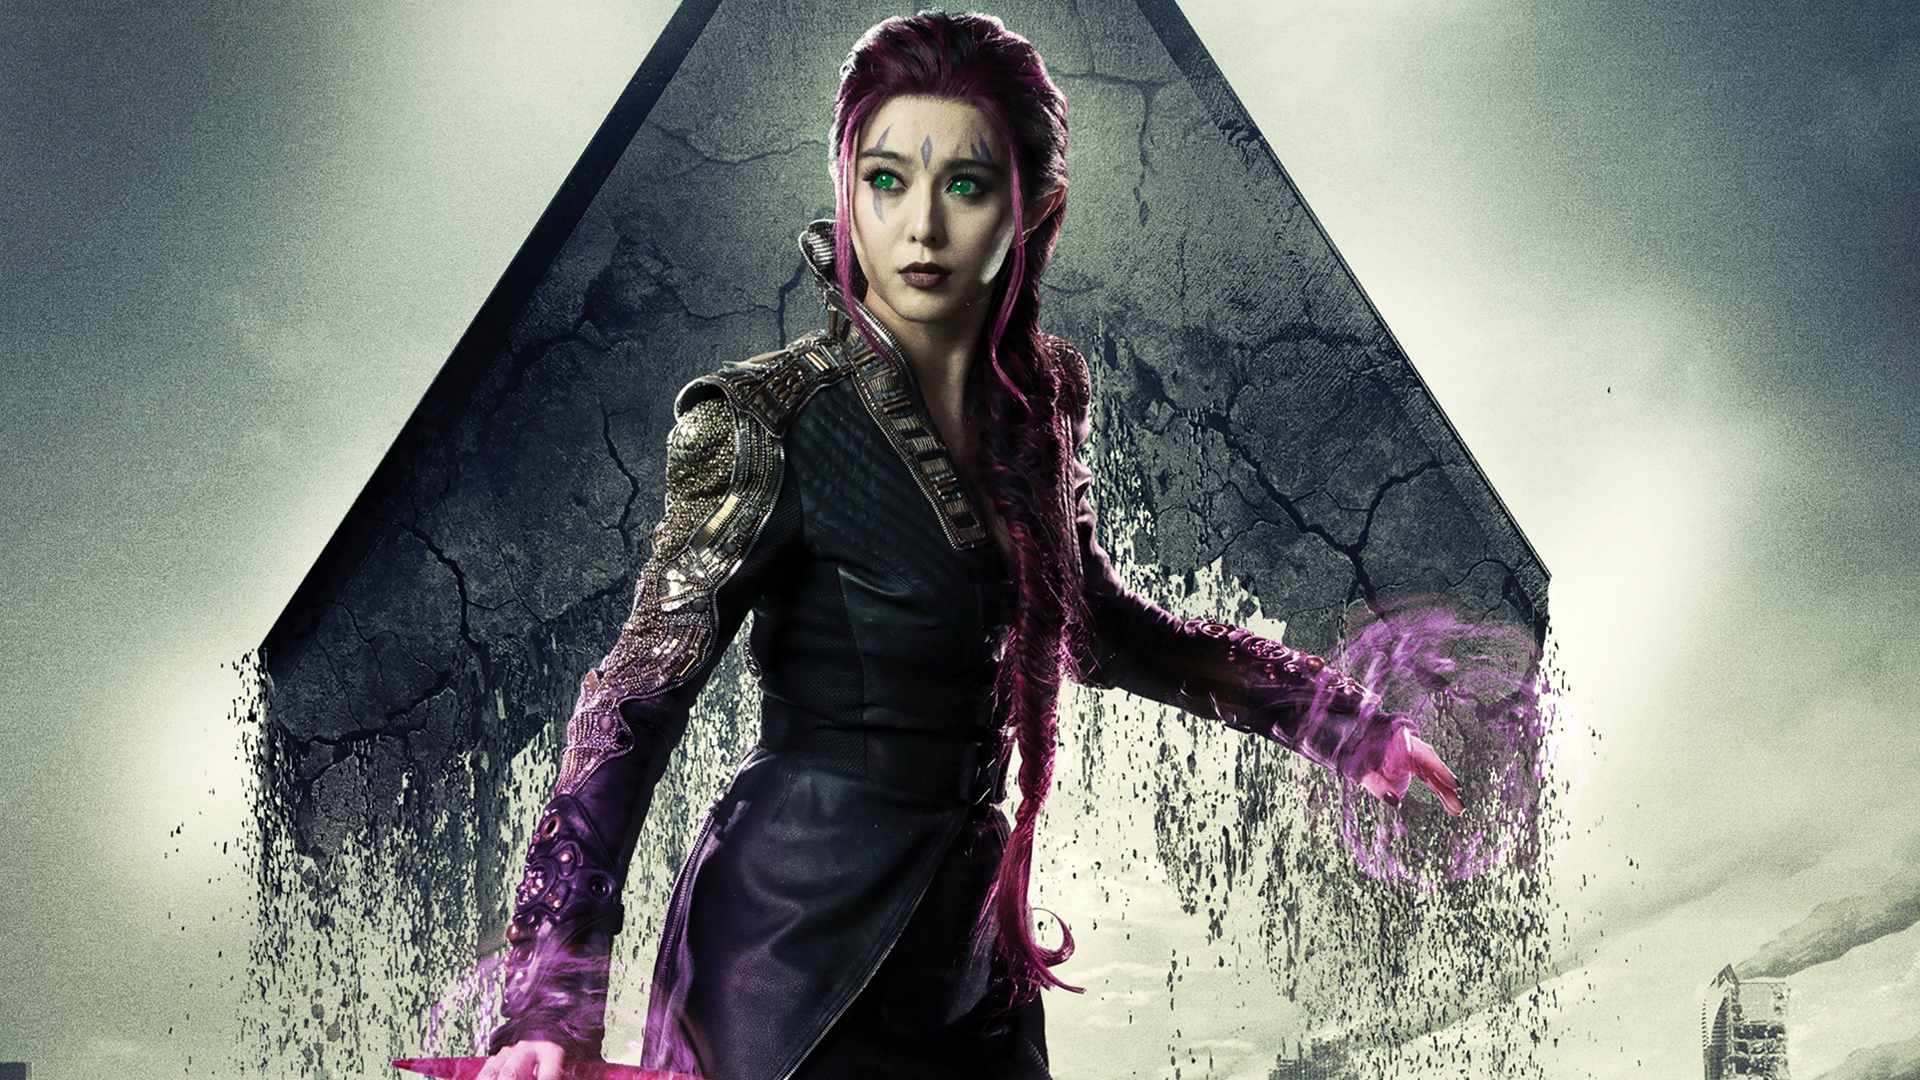 x men days of future past actress fan bingbing caught up in huge